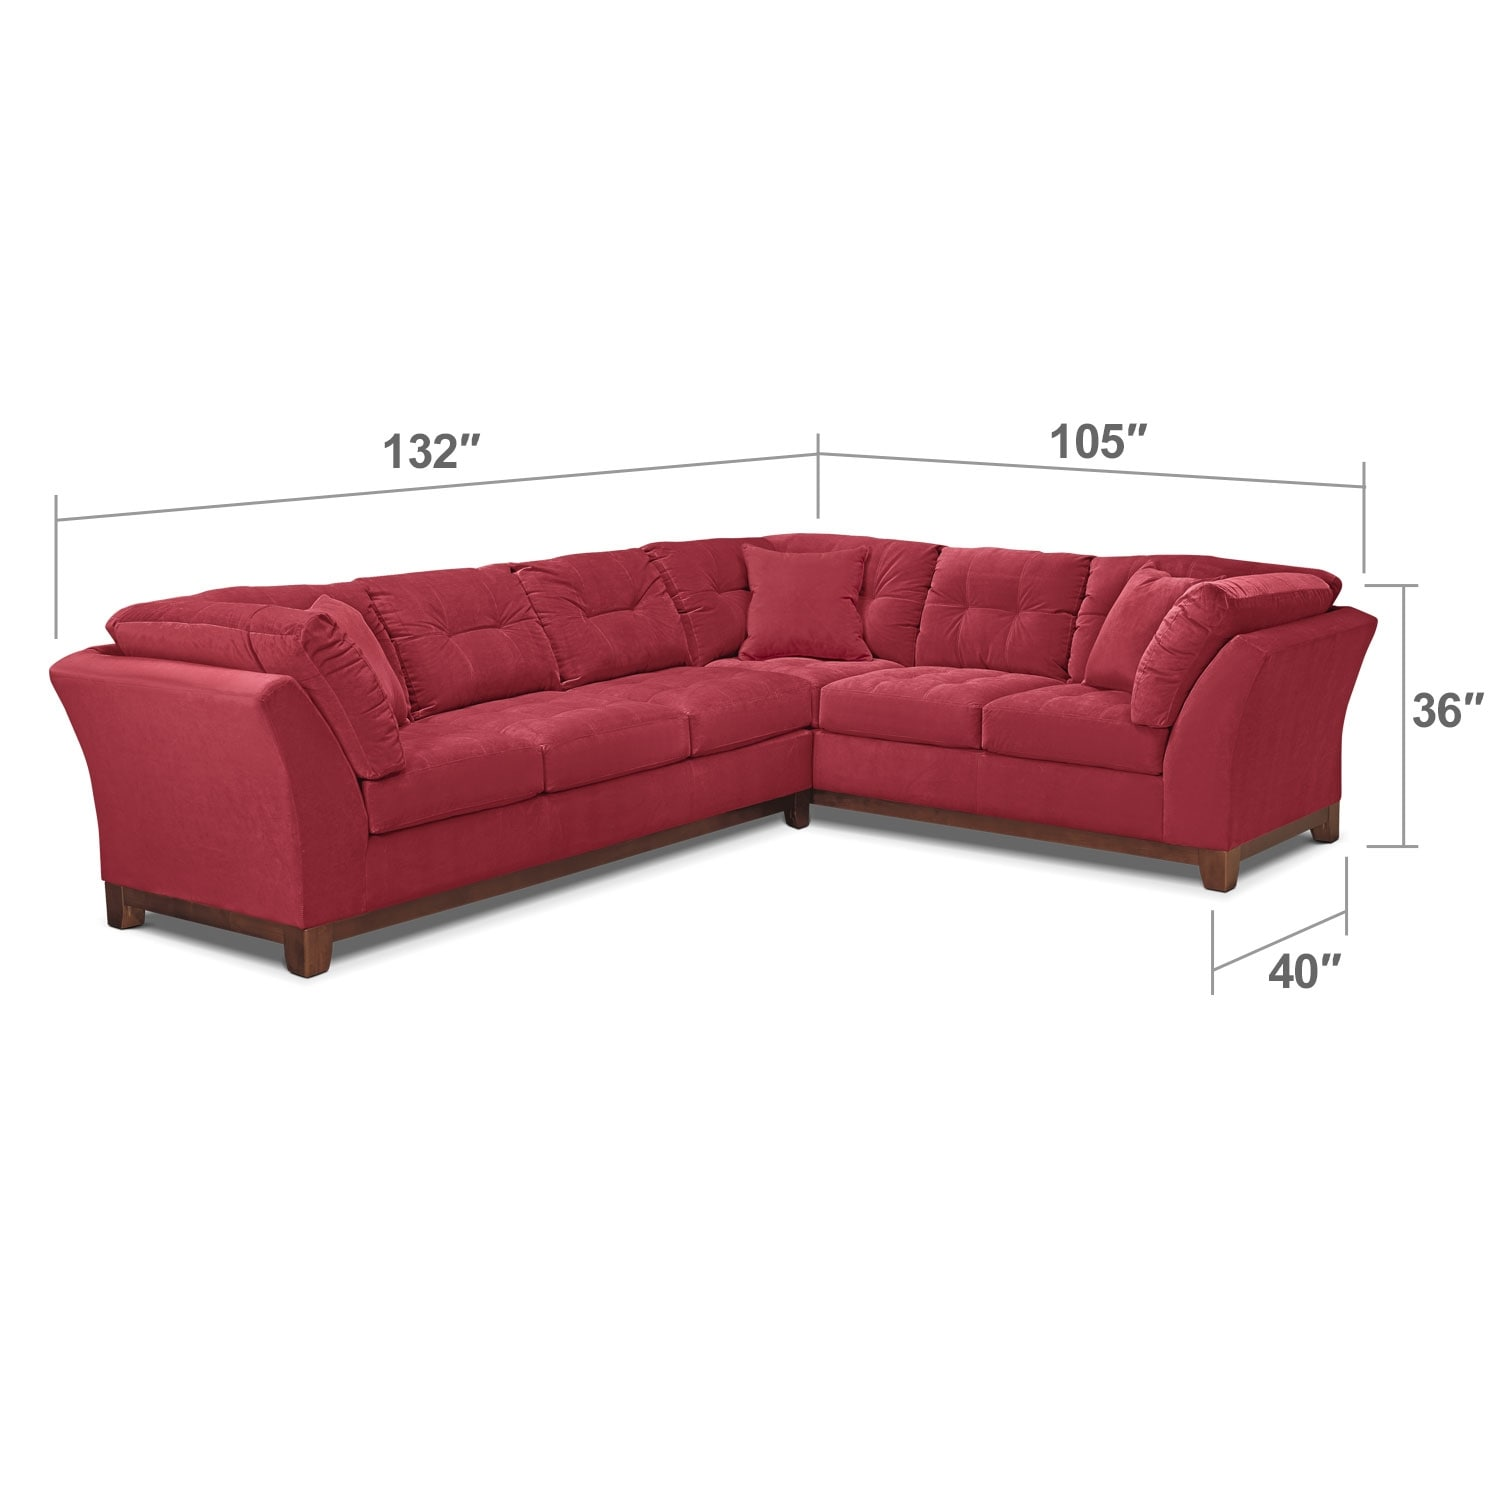 "Living Room Furniture - Solace 2-Piece Left-Facing 132"" Sofa Sectional - Poppy"